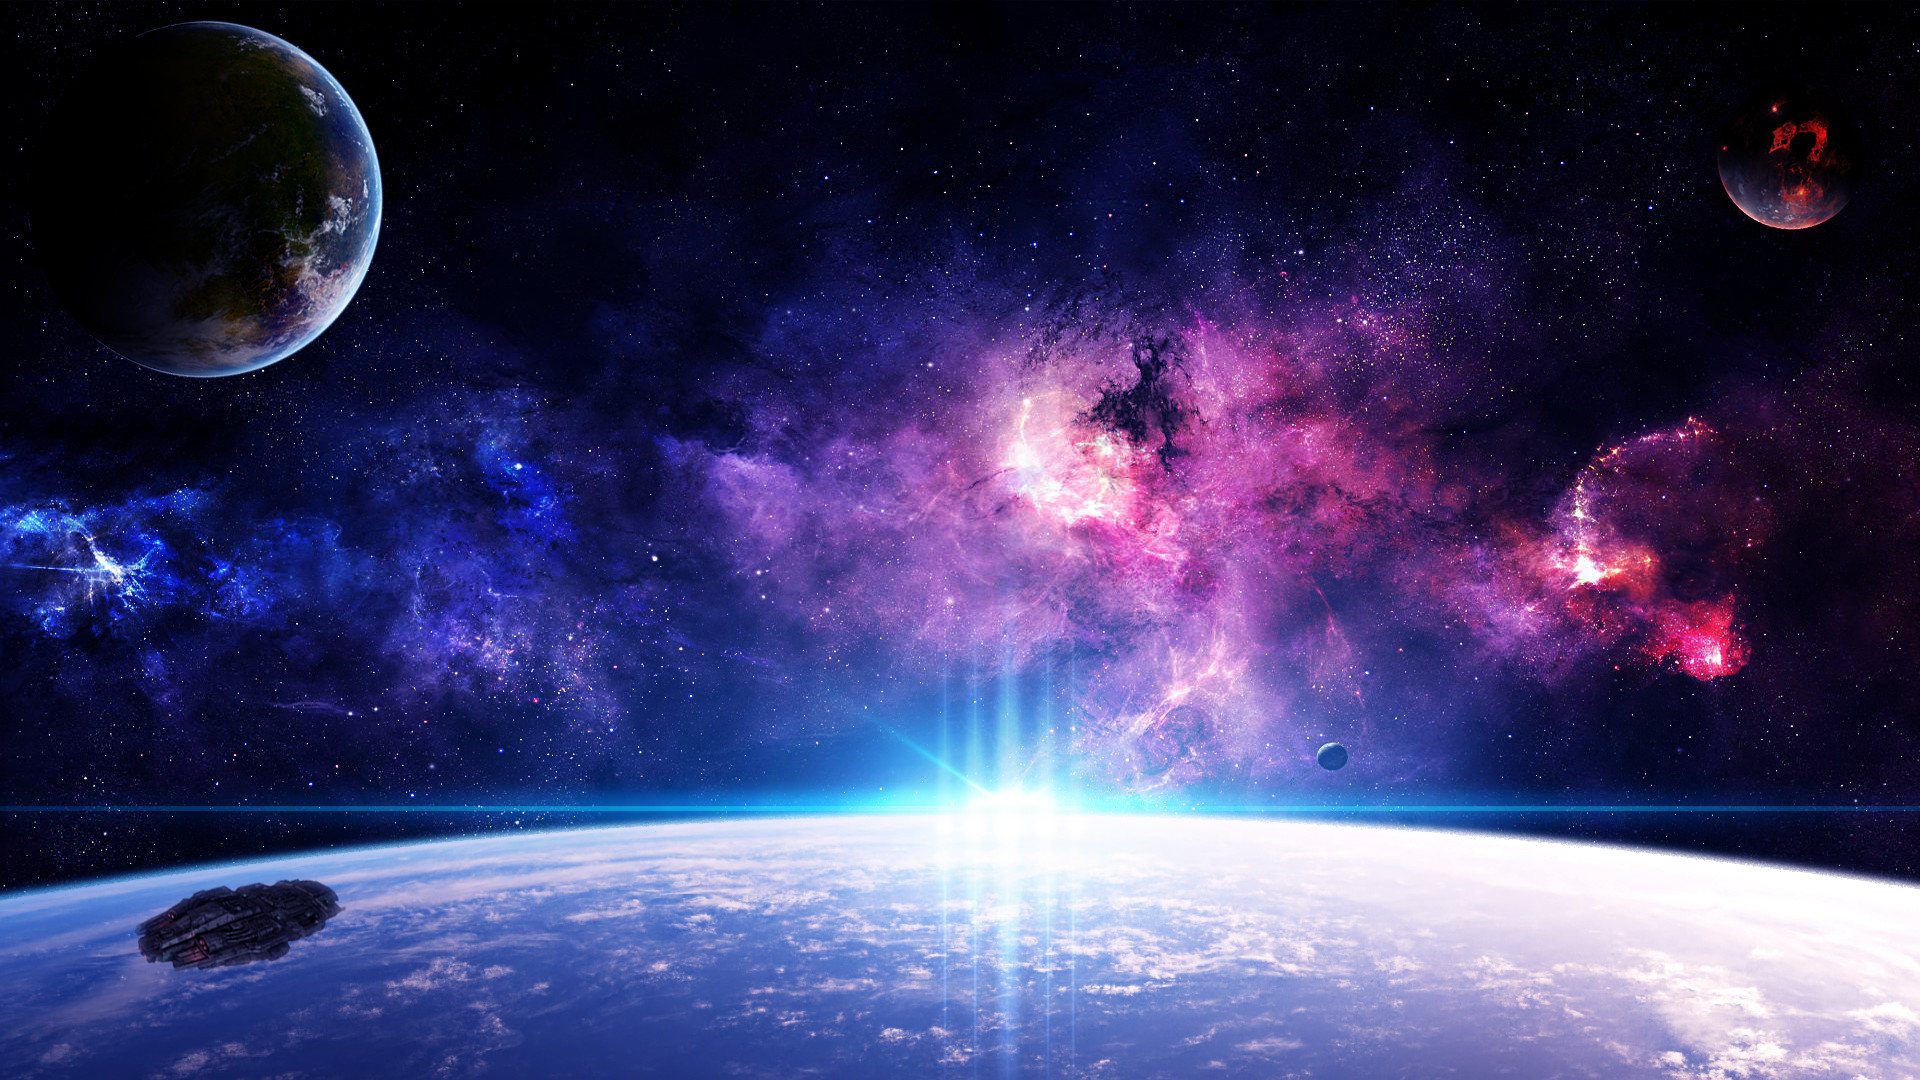 1920x1080 Hd Wallpapers For Your Desktop: Live Galaxy Wallpaper For PC (45+ Images